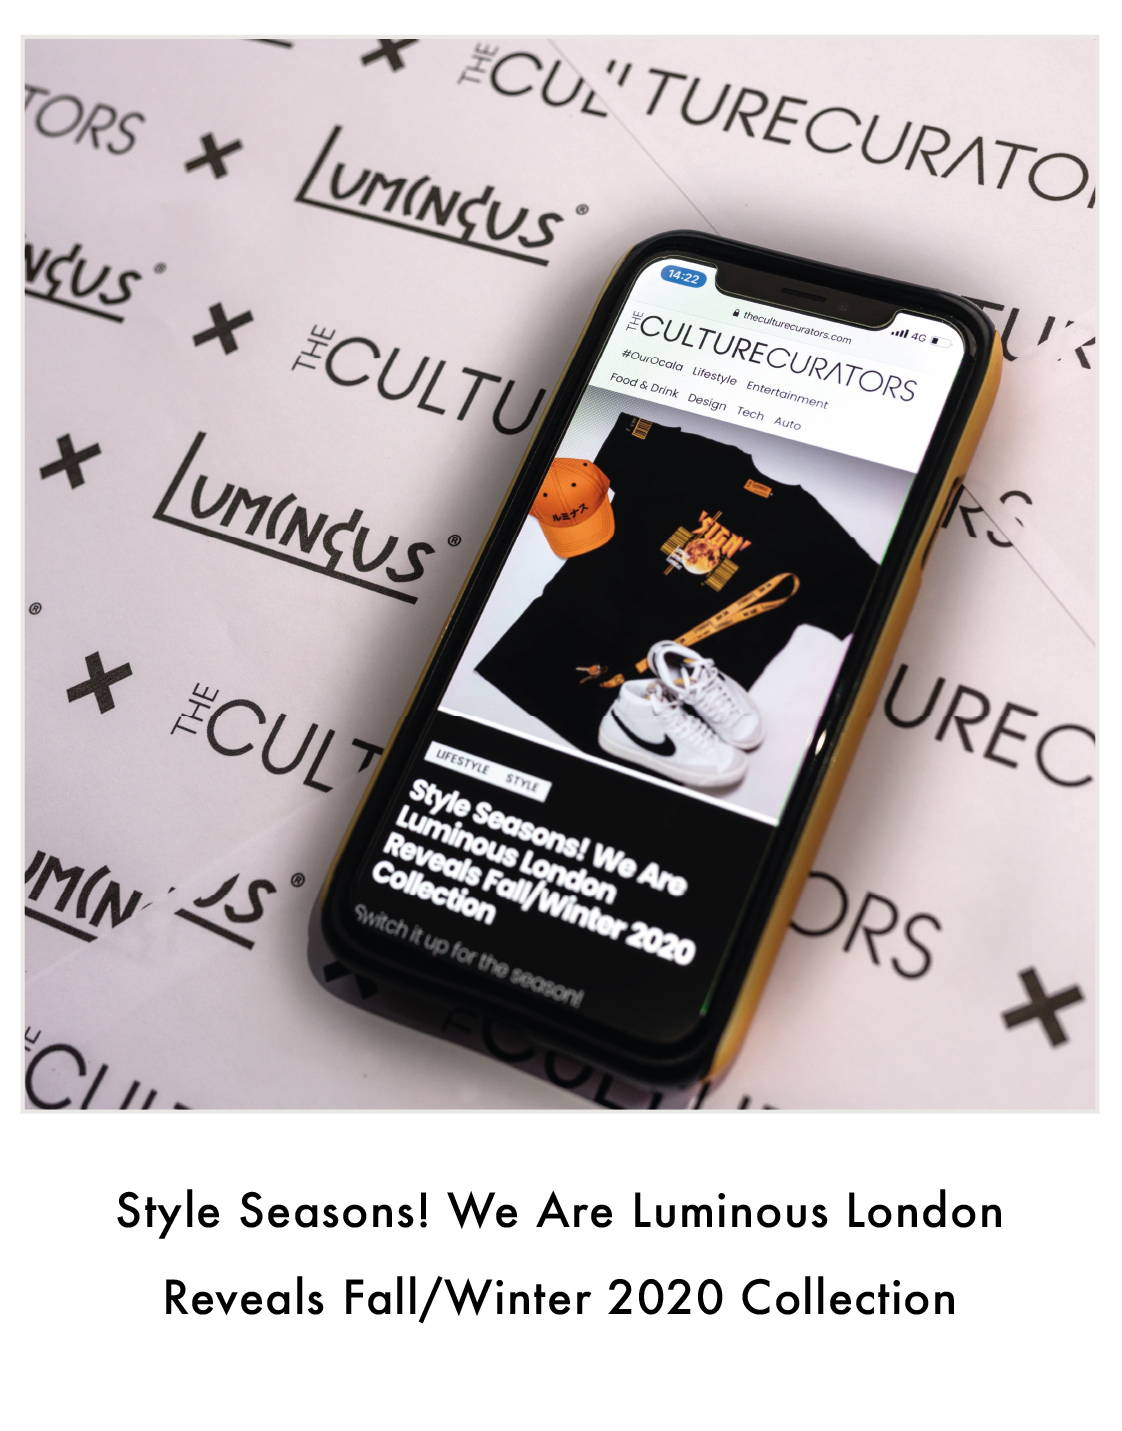 Style Seasons! We Are Luminous London Reveals Fall/Winter 2020 Collection